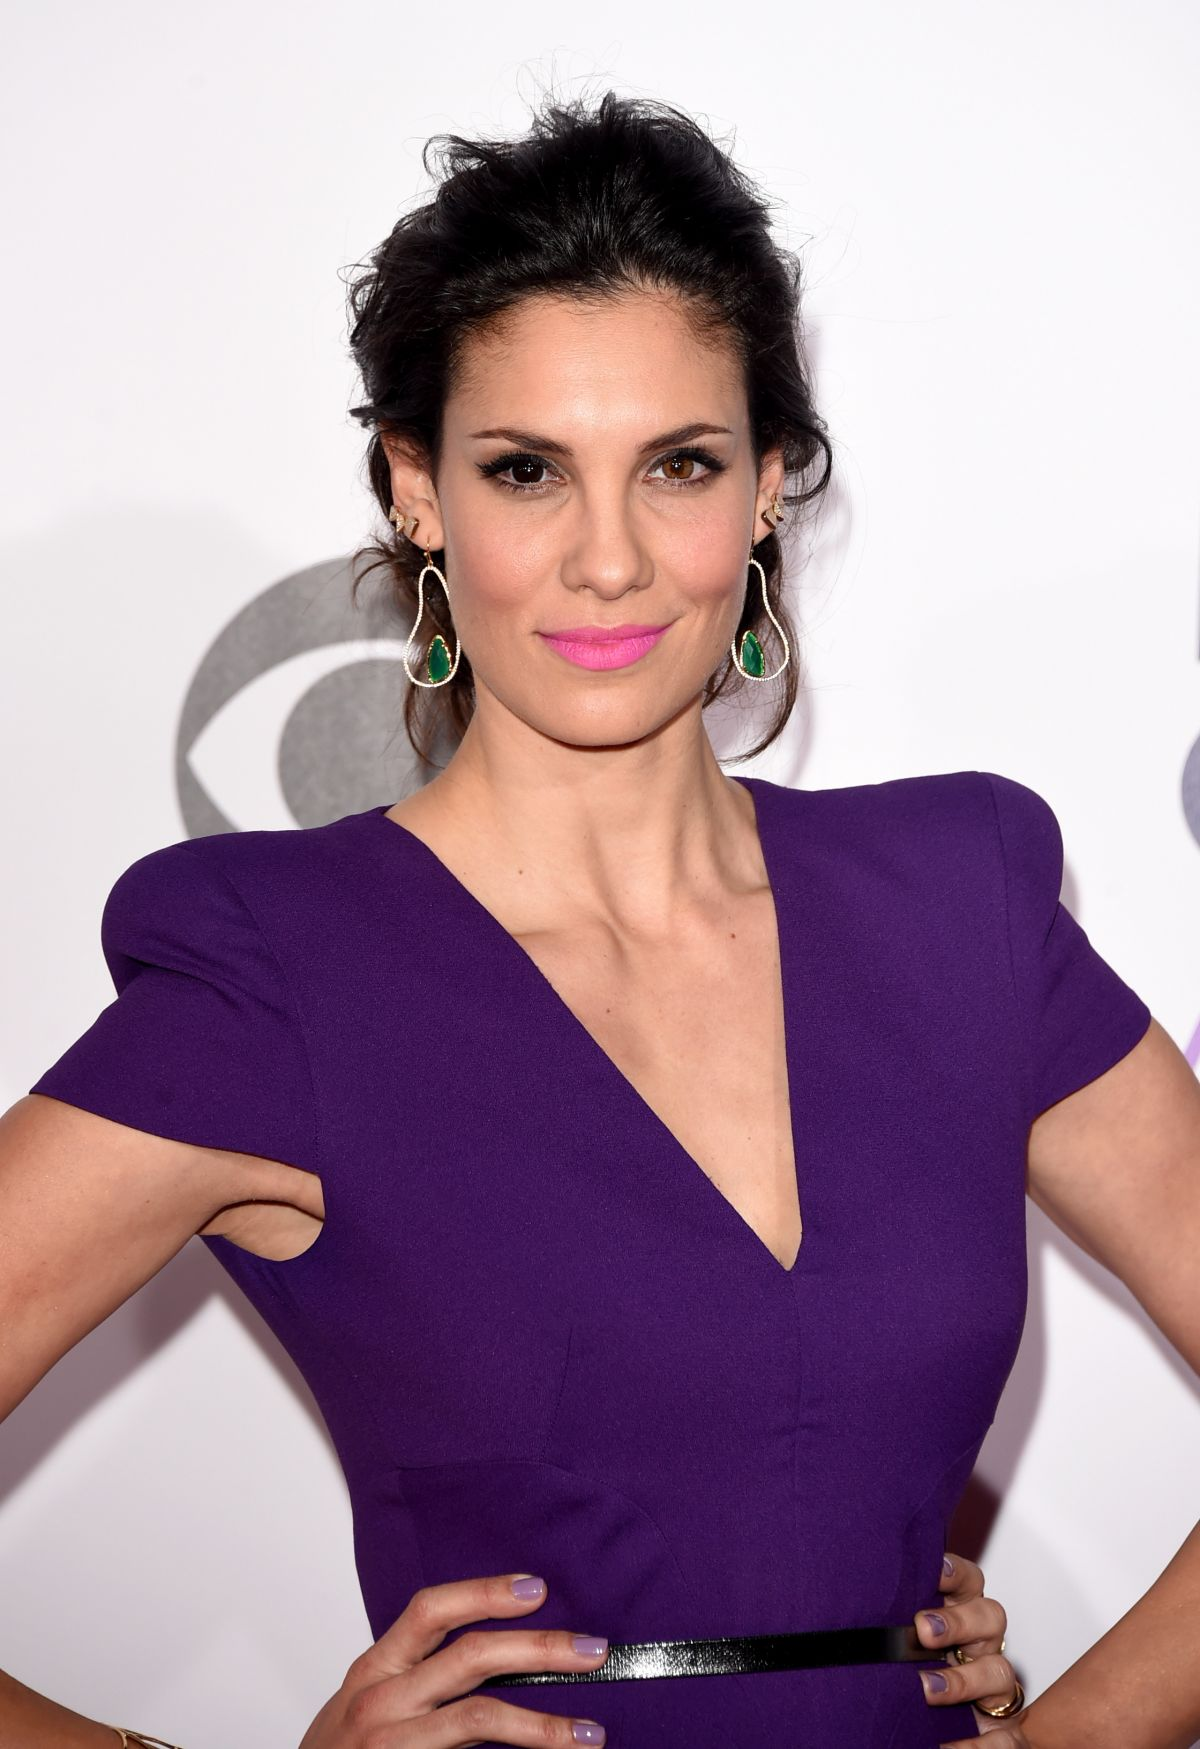 70+ Hot Pictures of Daniela Ruah From NCIS Los Angeles Will Melt You Like Ice | Best Of Comic Books